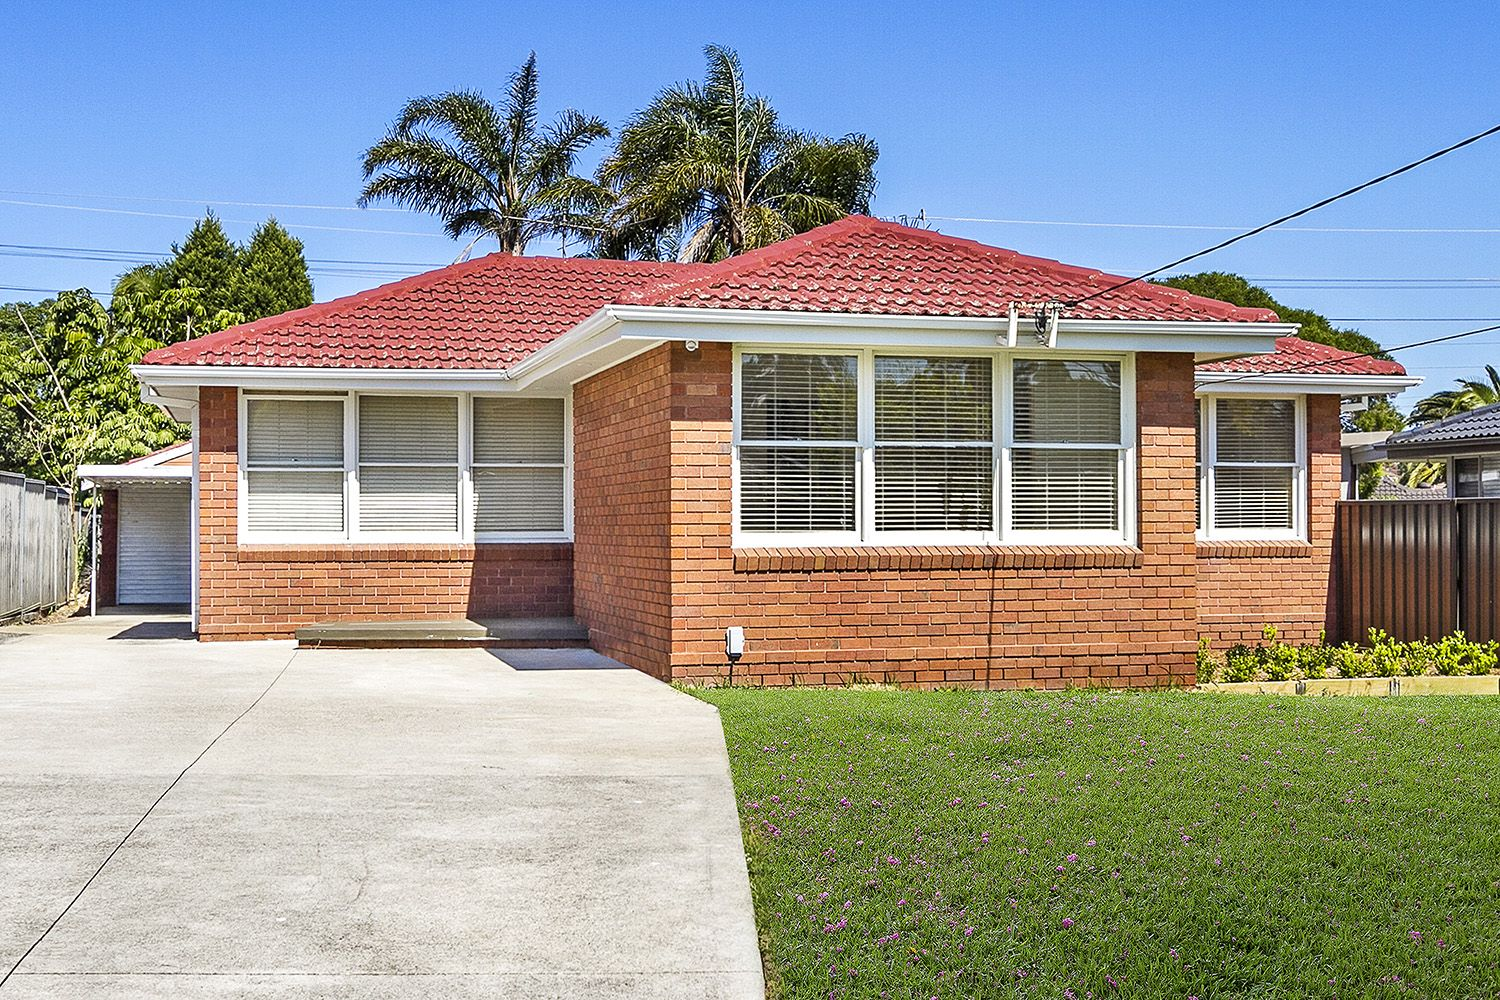 49 Chircan Street, Old Toongabbie NSW 2146